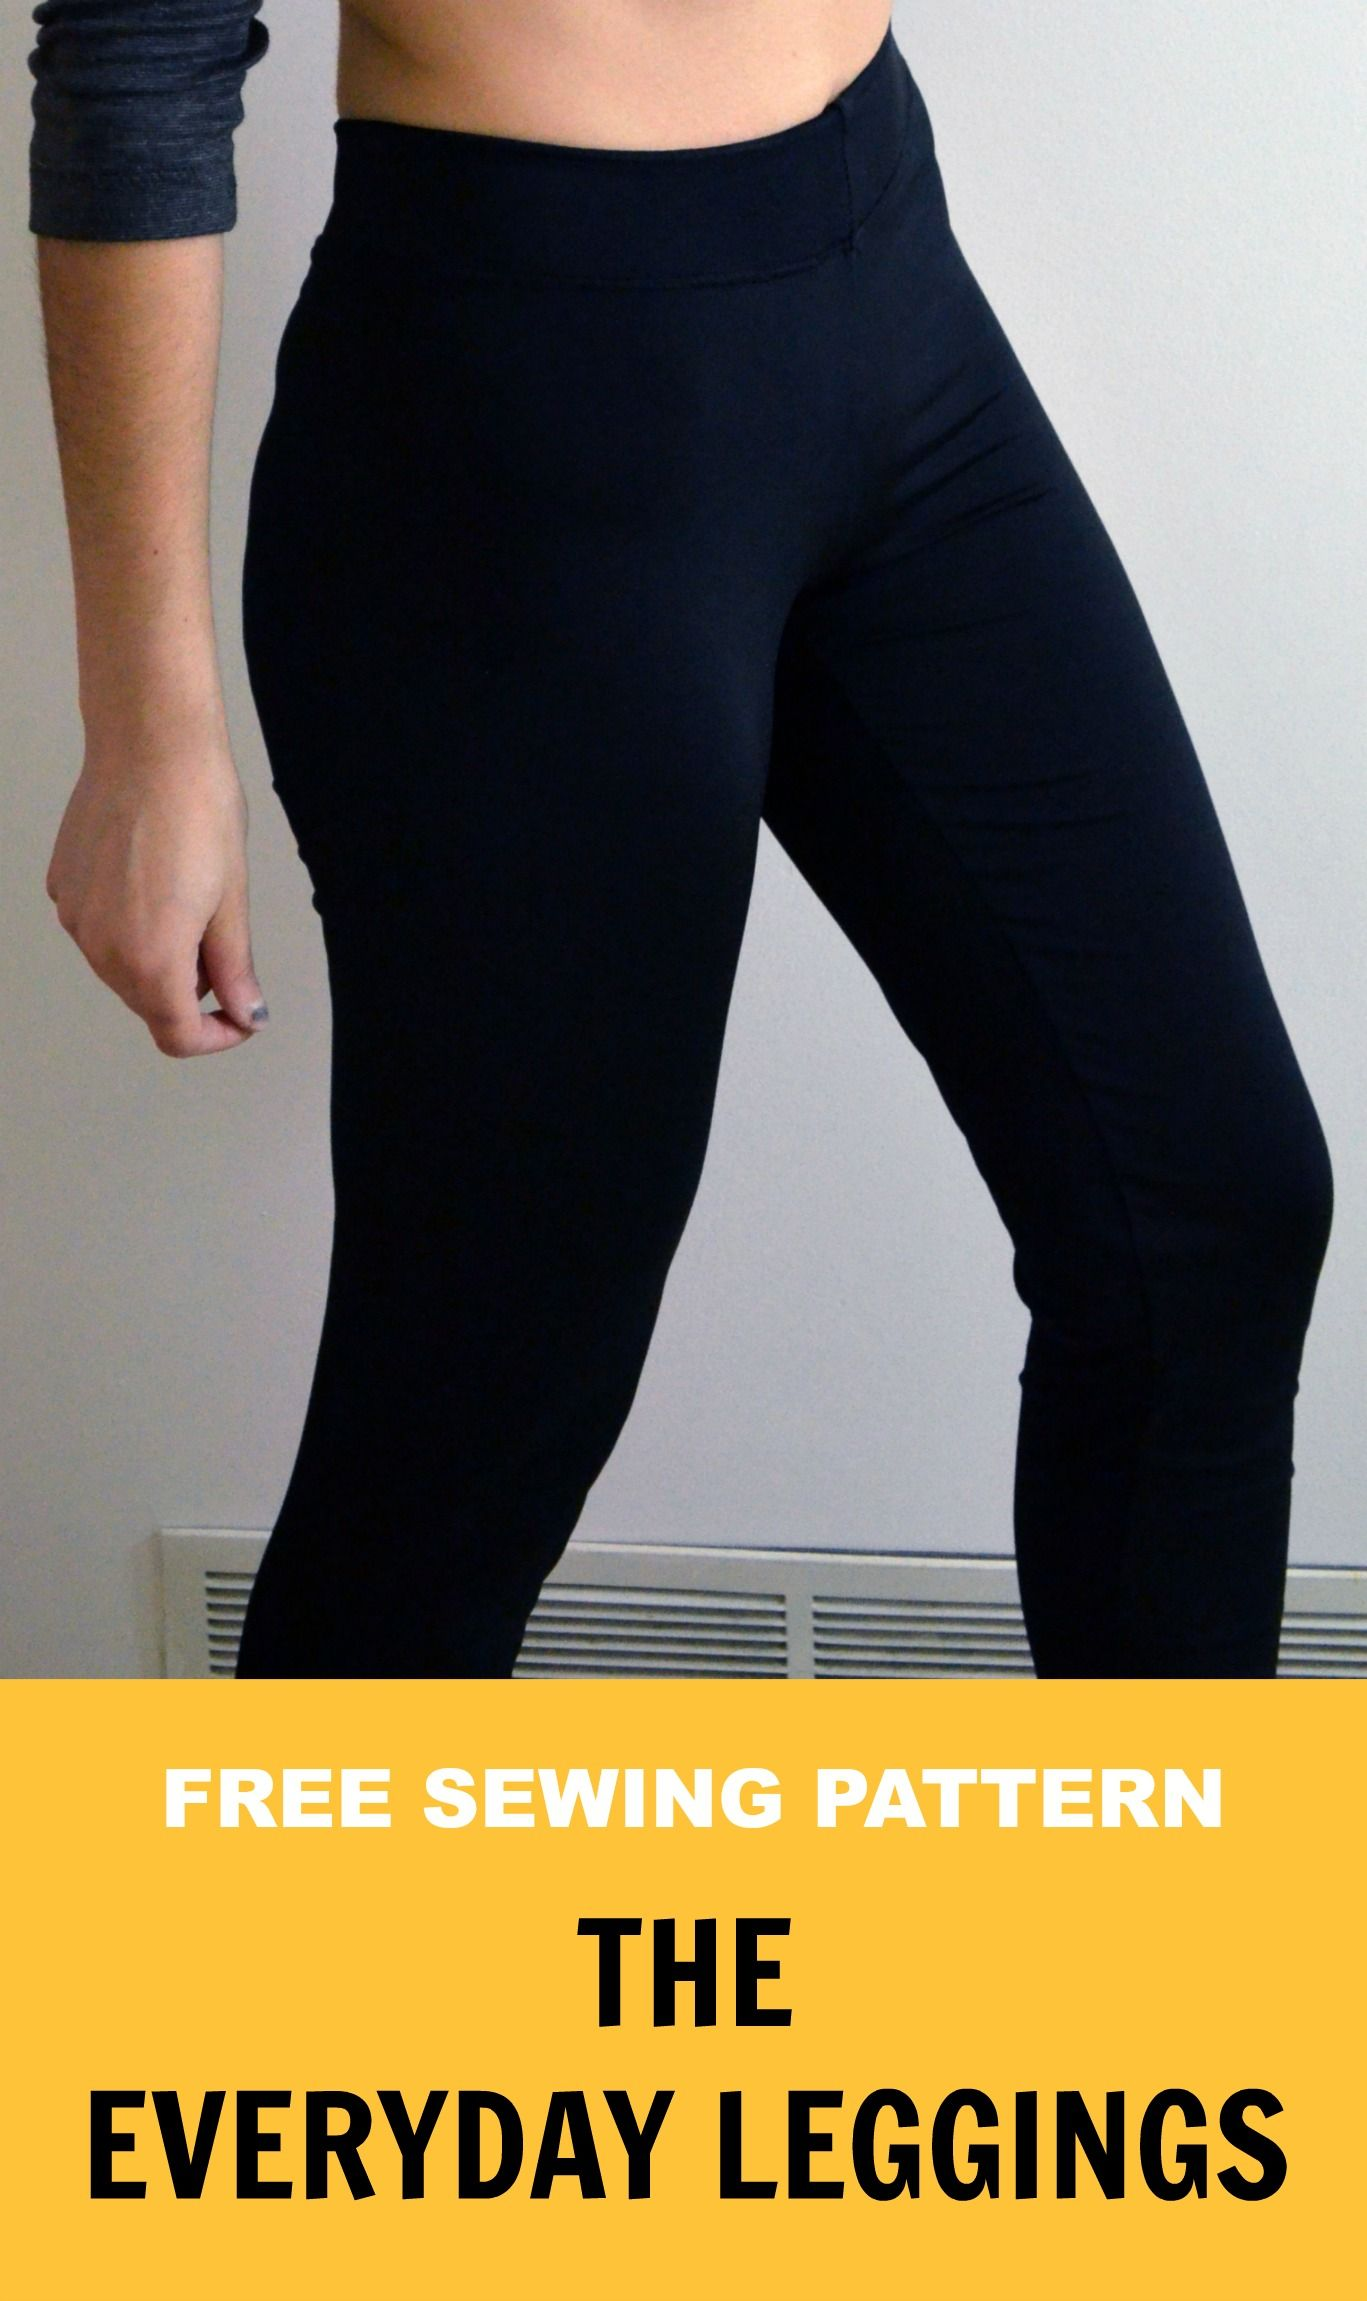 FREE SEWING PATTERN: Easy Everyday Leggings - On the Cutting Floor ...